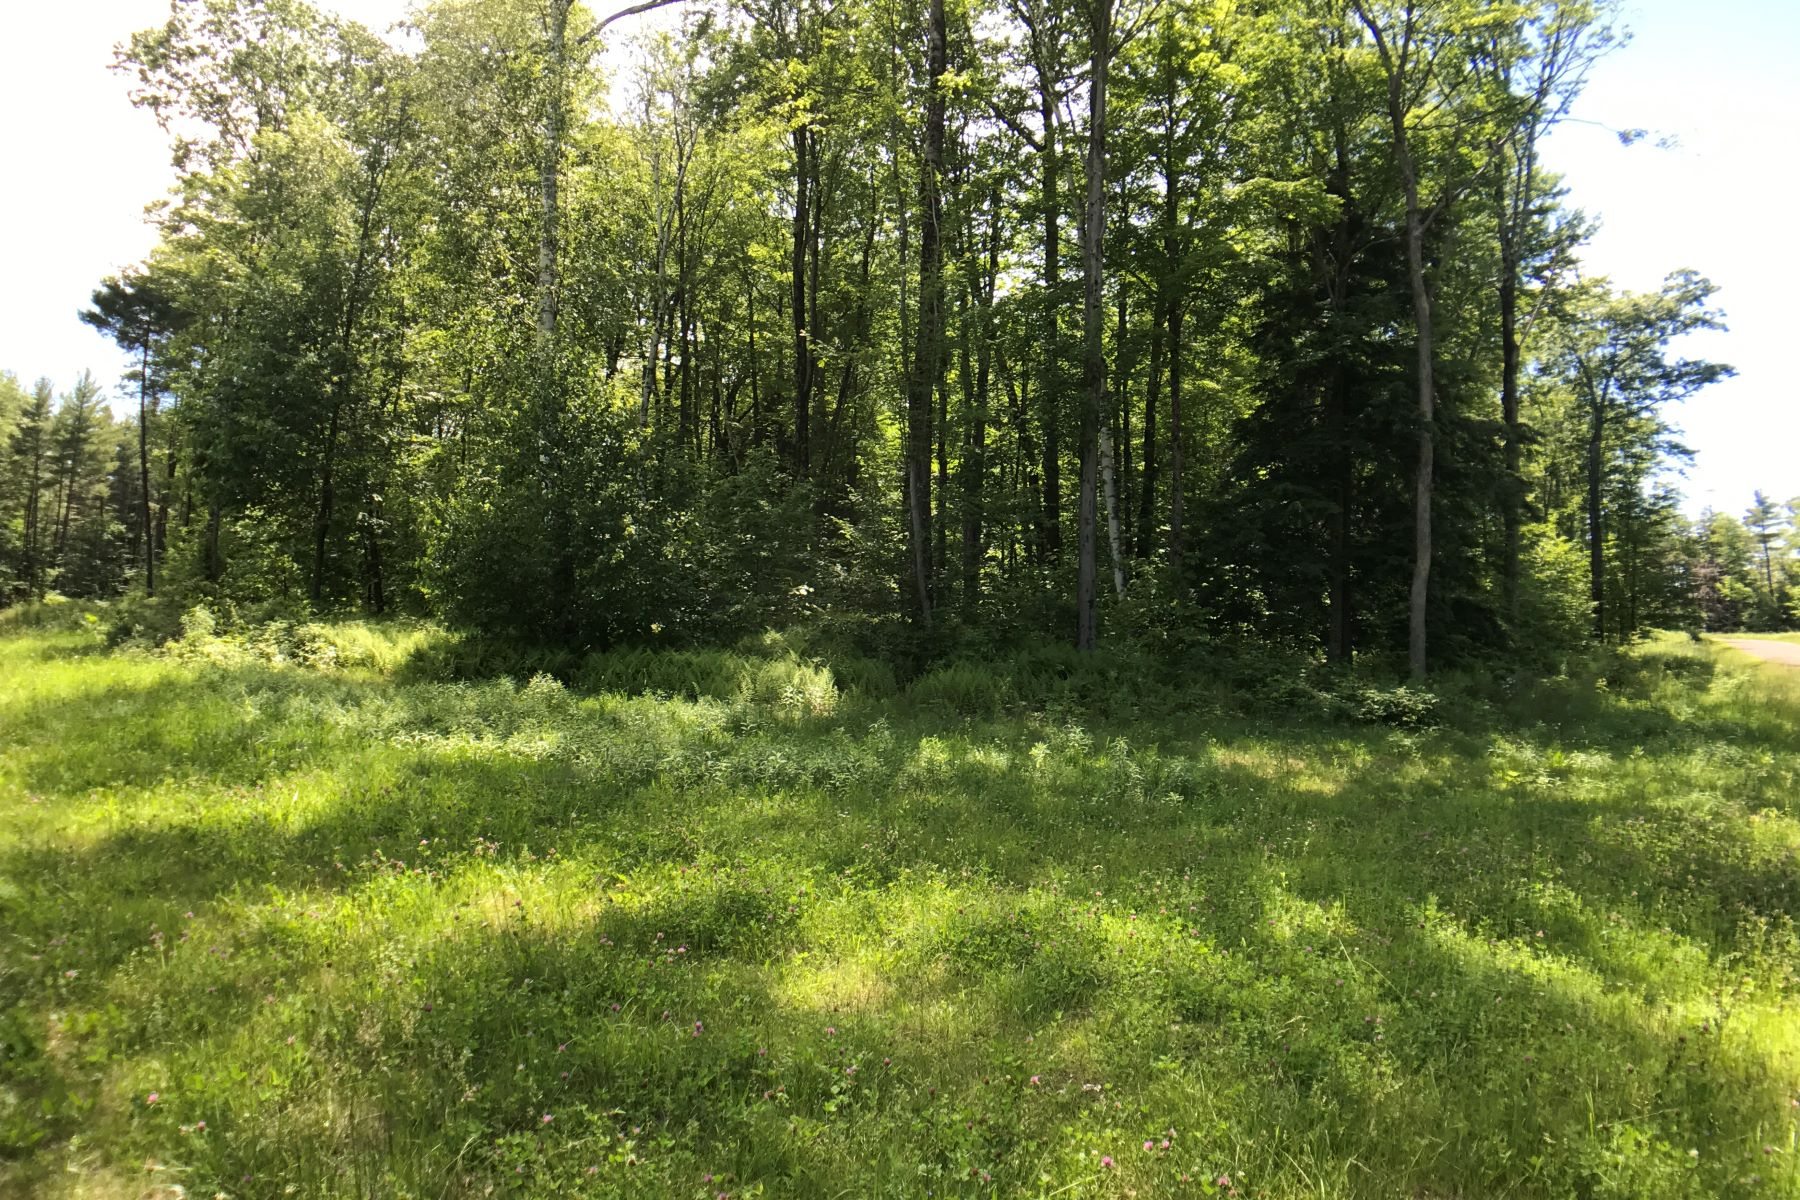 Terreno por un Venta en Affordable Ready-to-Build Parcel with Shared Waterfront Access Lot #2, Moose Dr Lee, Massachusetts, 01238 Estados Unidos